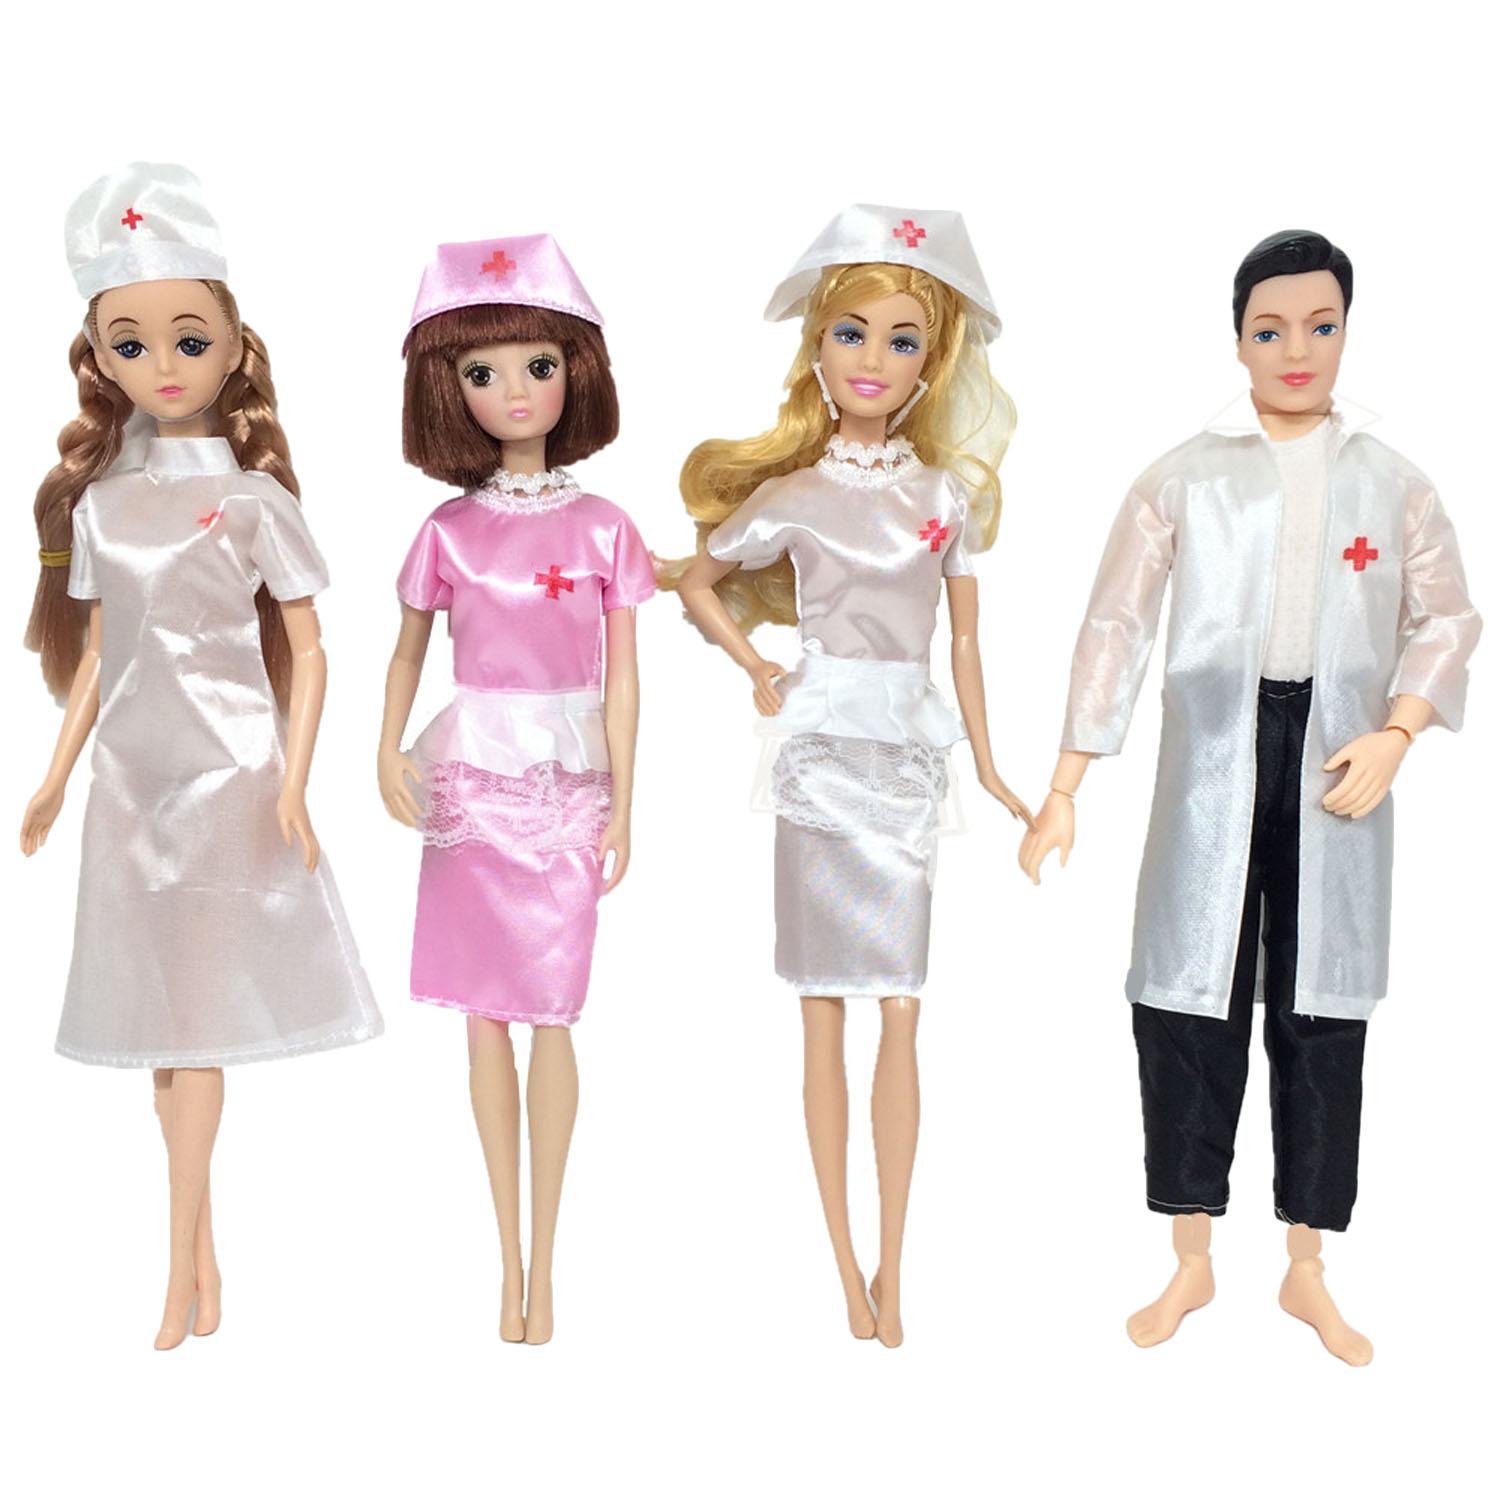 4 Set Doll Toy Nurse And Doctor Career Apparel Clothes Outfits Accessories For Barbie Toys Children Birthday Xmas Gift